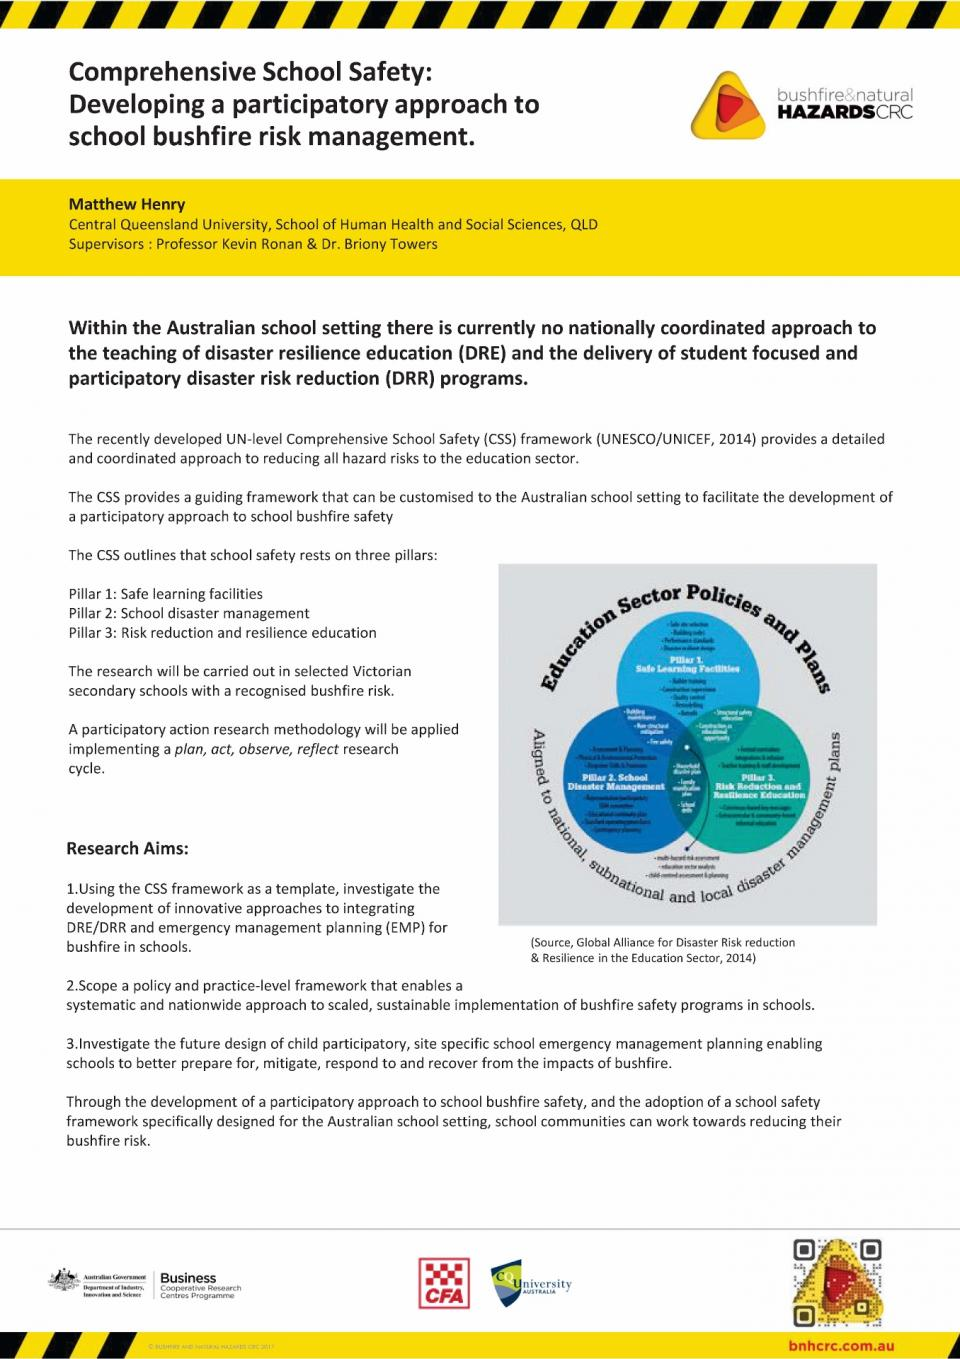 Comprehensive school safety: developing a participatory approach to school bushfire risk management